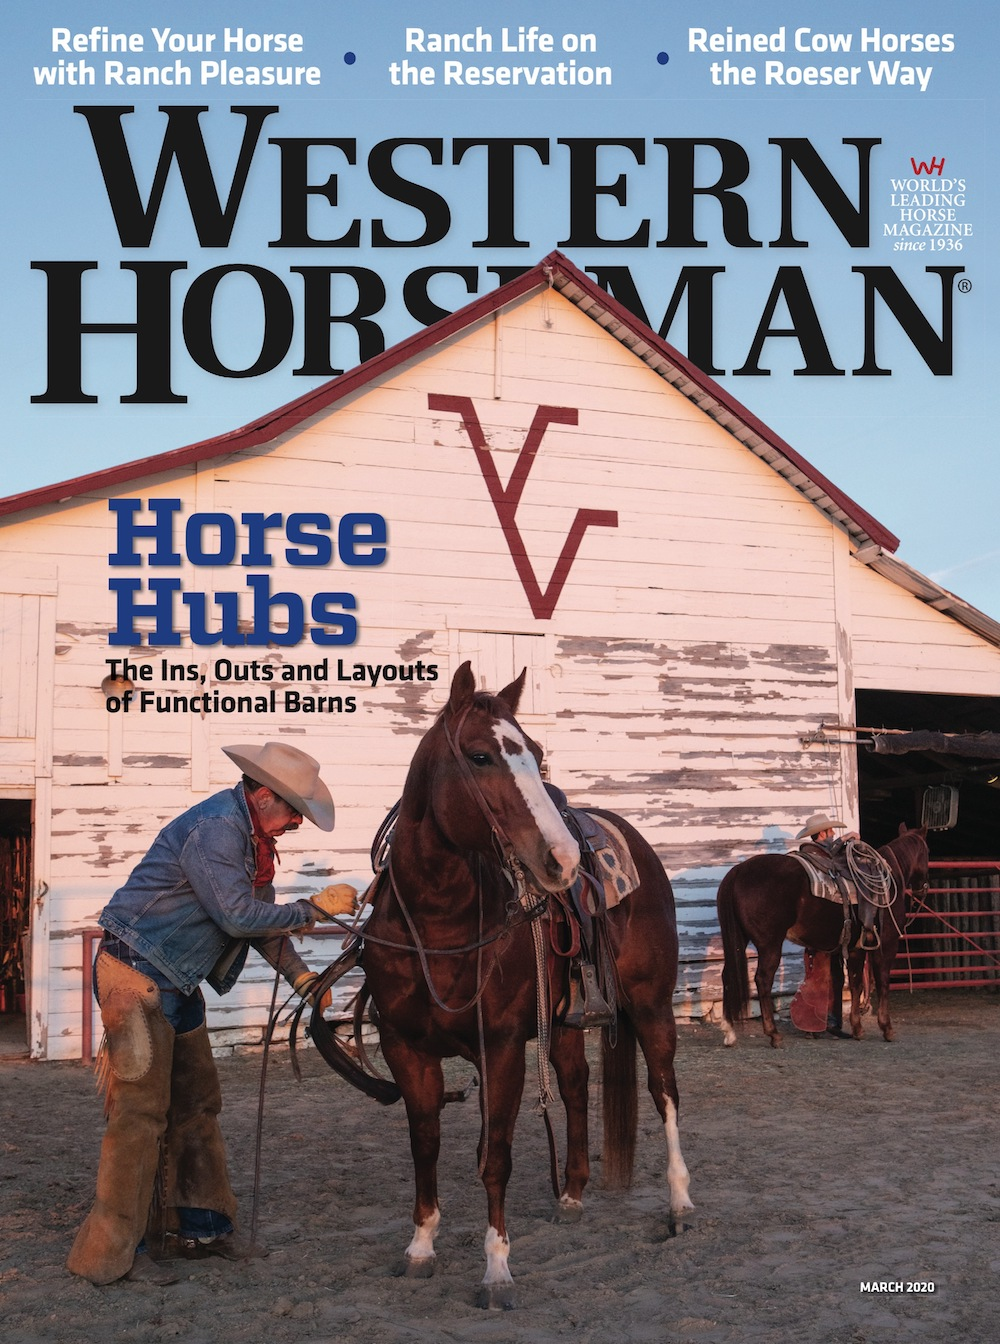 Western Horseman magazine March 2020 cover